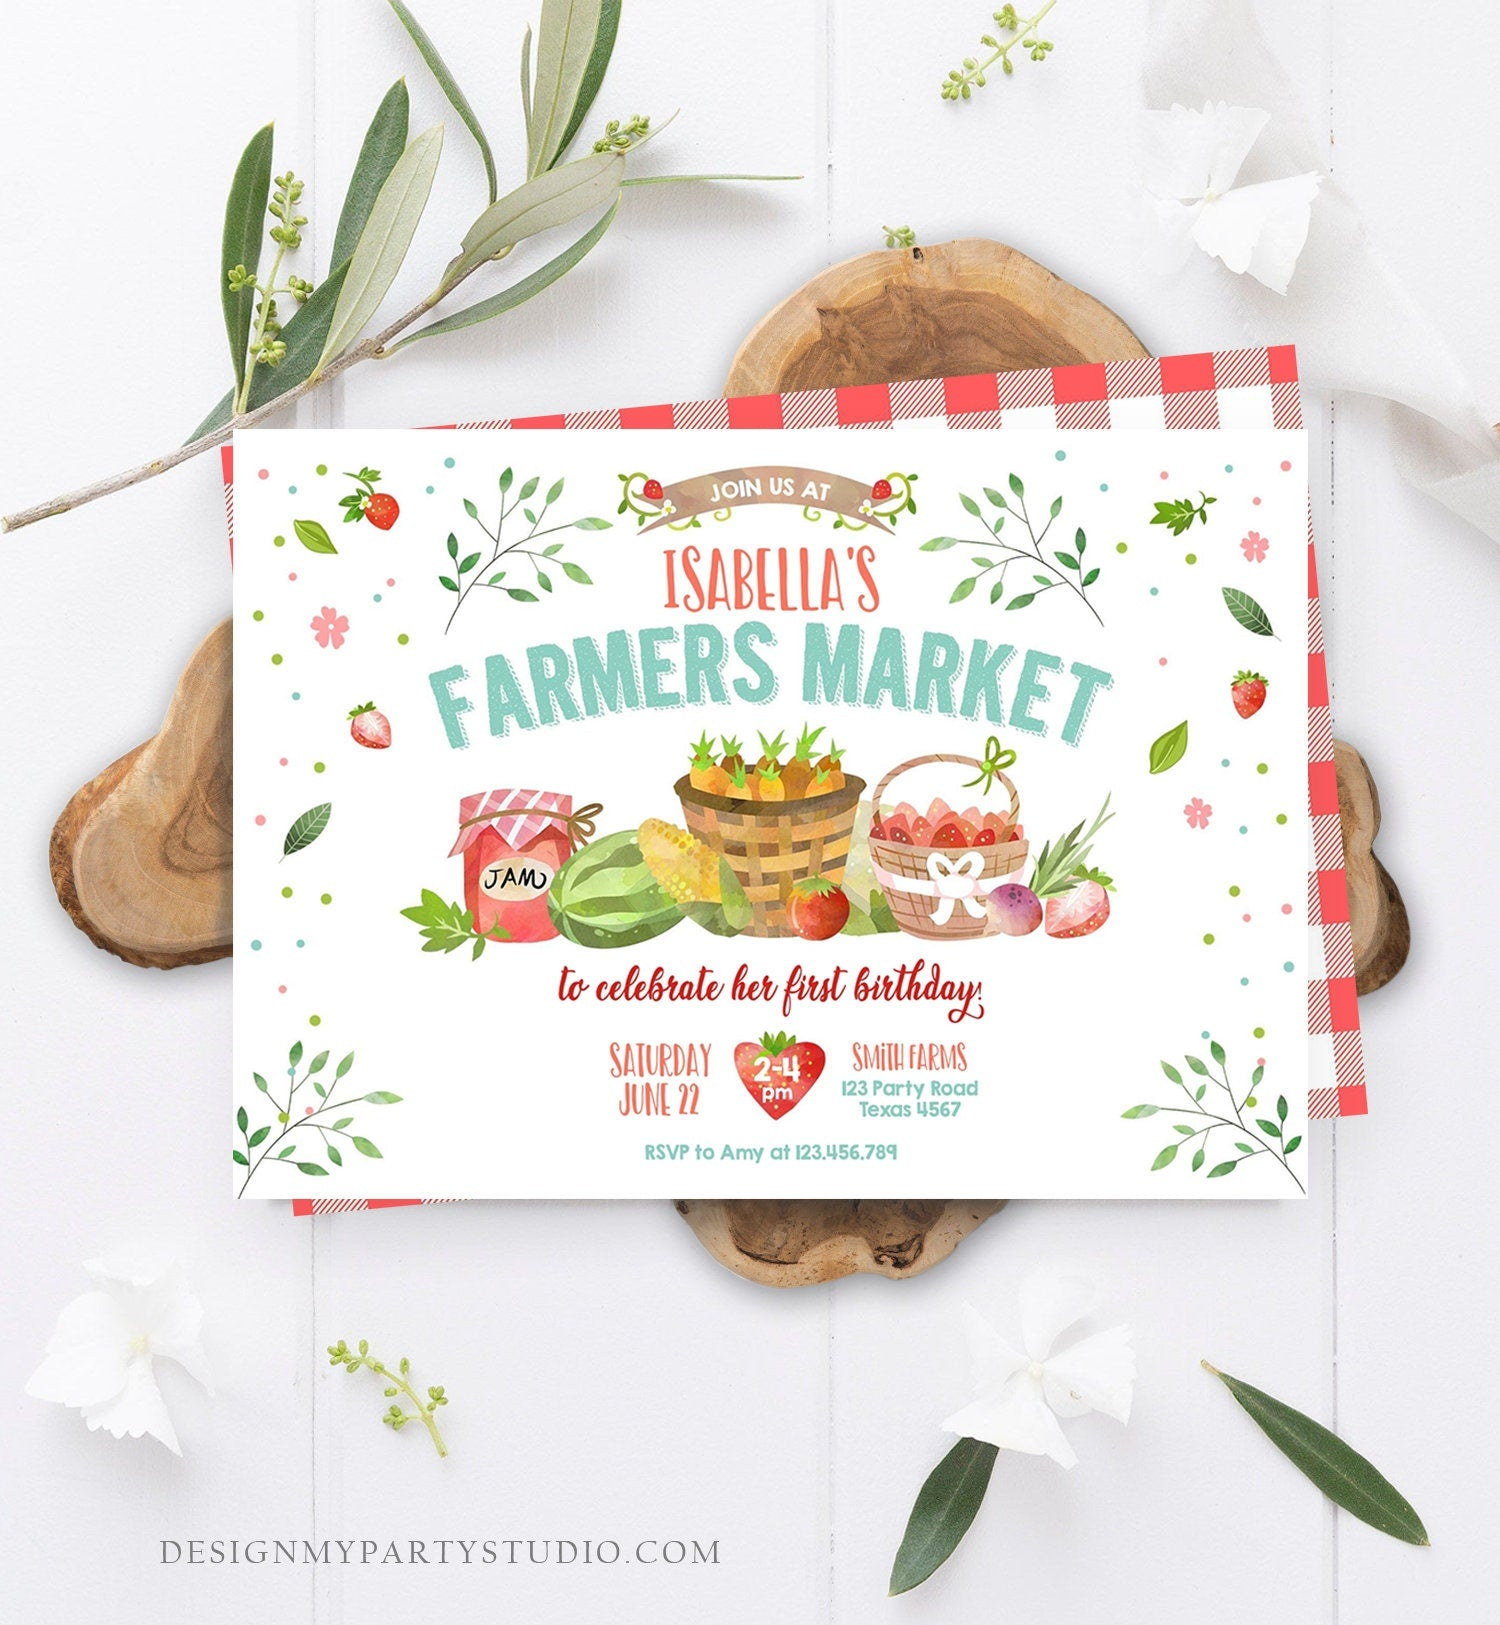 Editable Farmers Market Birthday Invitation Strawberry Farm Party Fruits Market Home Grown Download Printable Invitation Template Corjl 0144